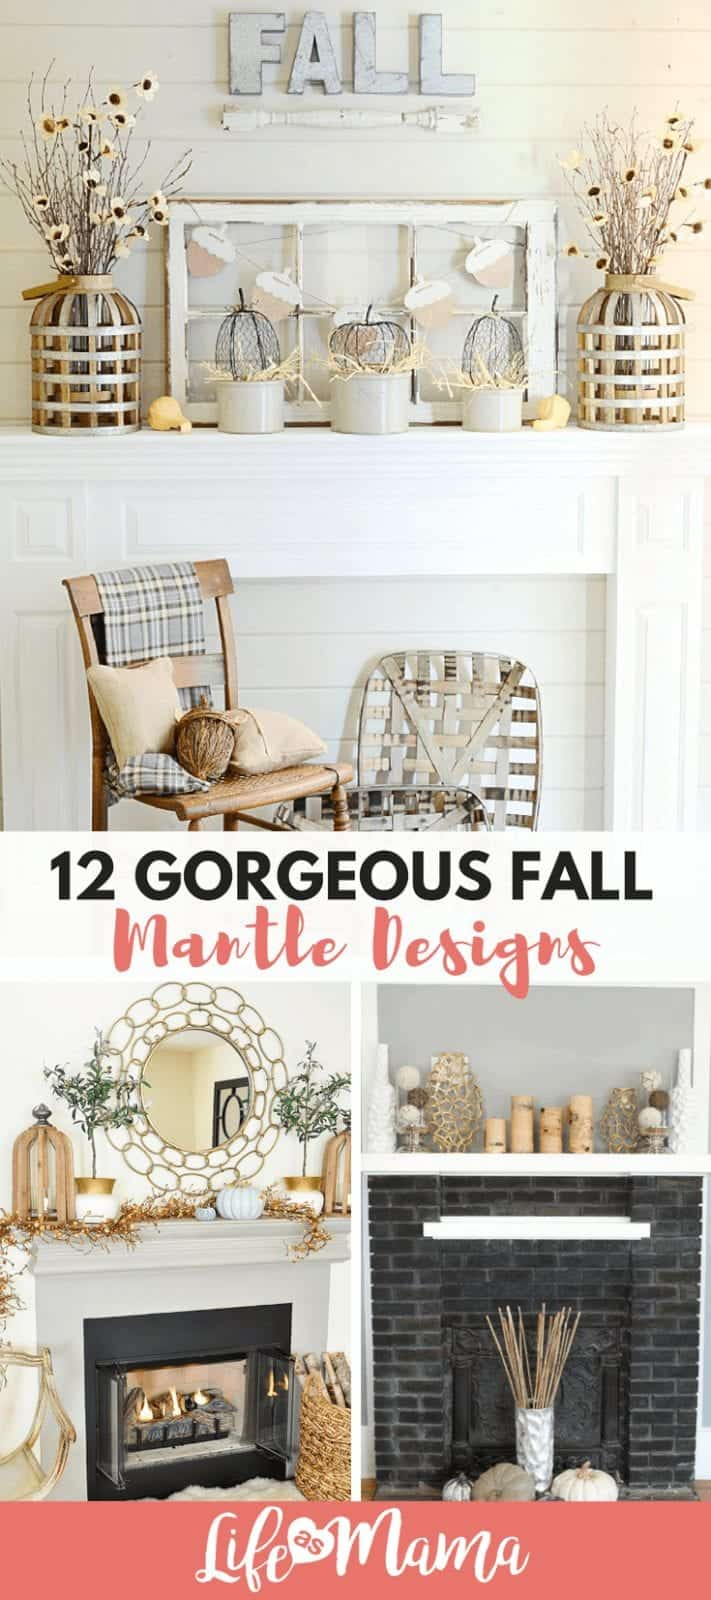 12 Gorgeous Fall Mantle Designs